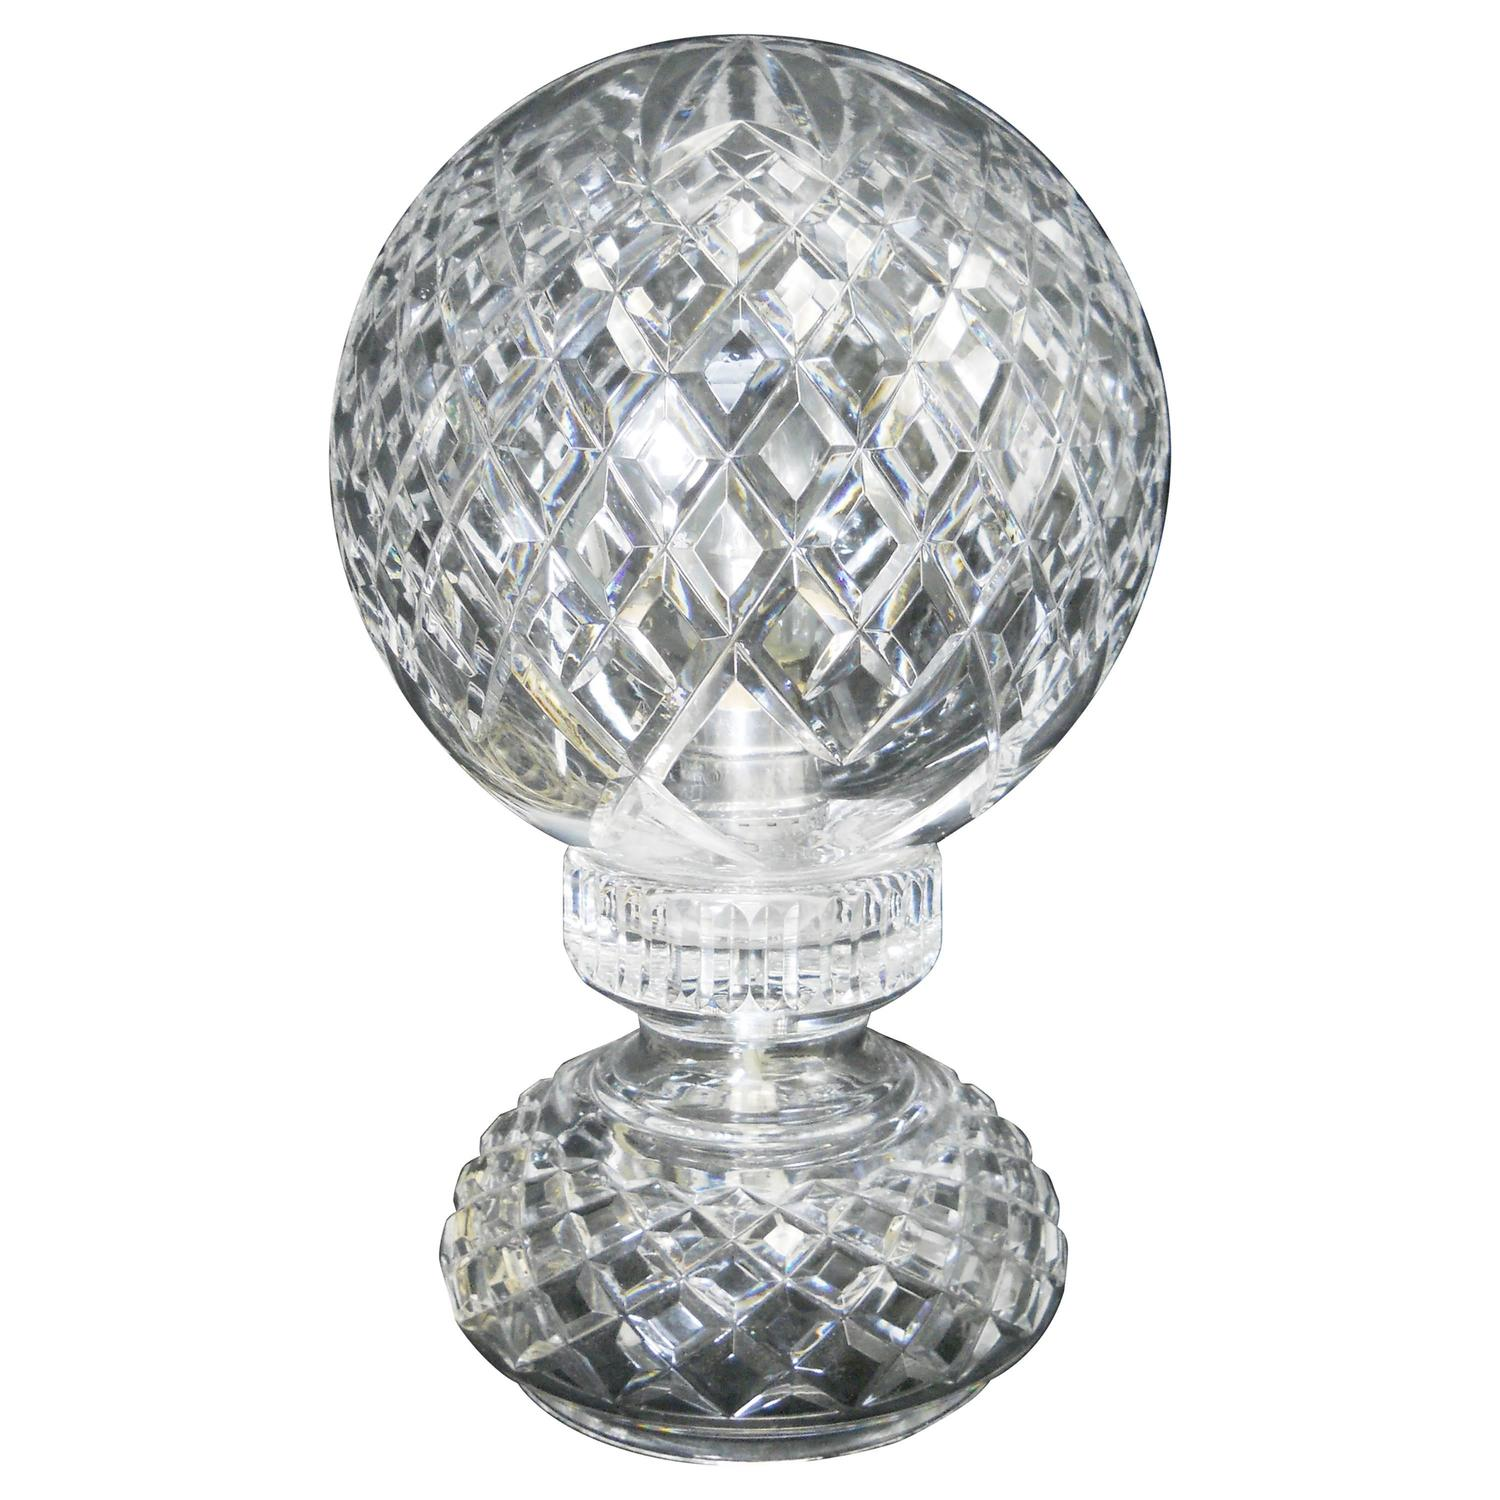 Waterford crystal table lamp shades best inspiration for table lamp waterford crystal table lamp shades waterford table lamp shades geotapseo Images